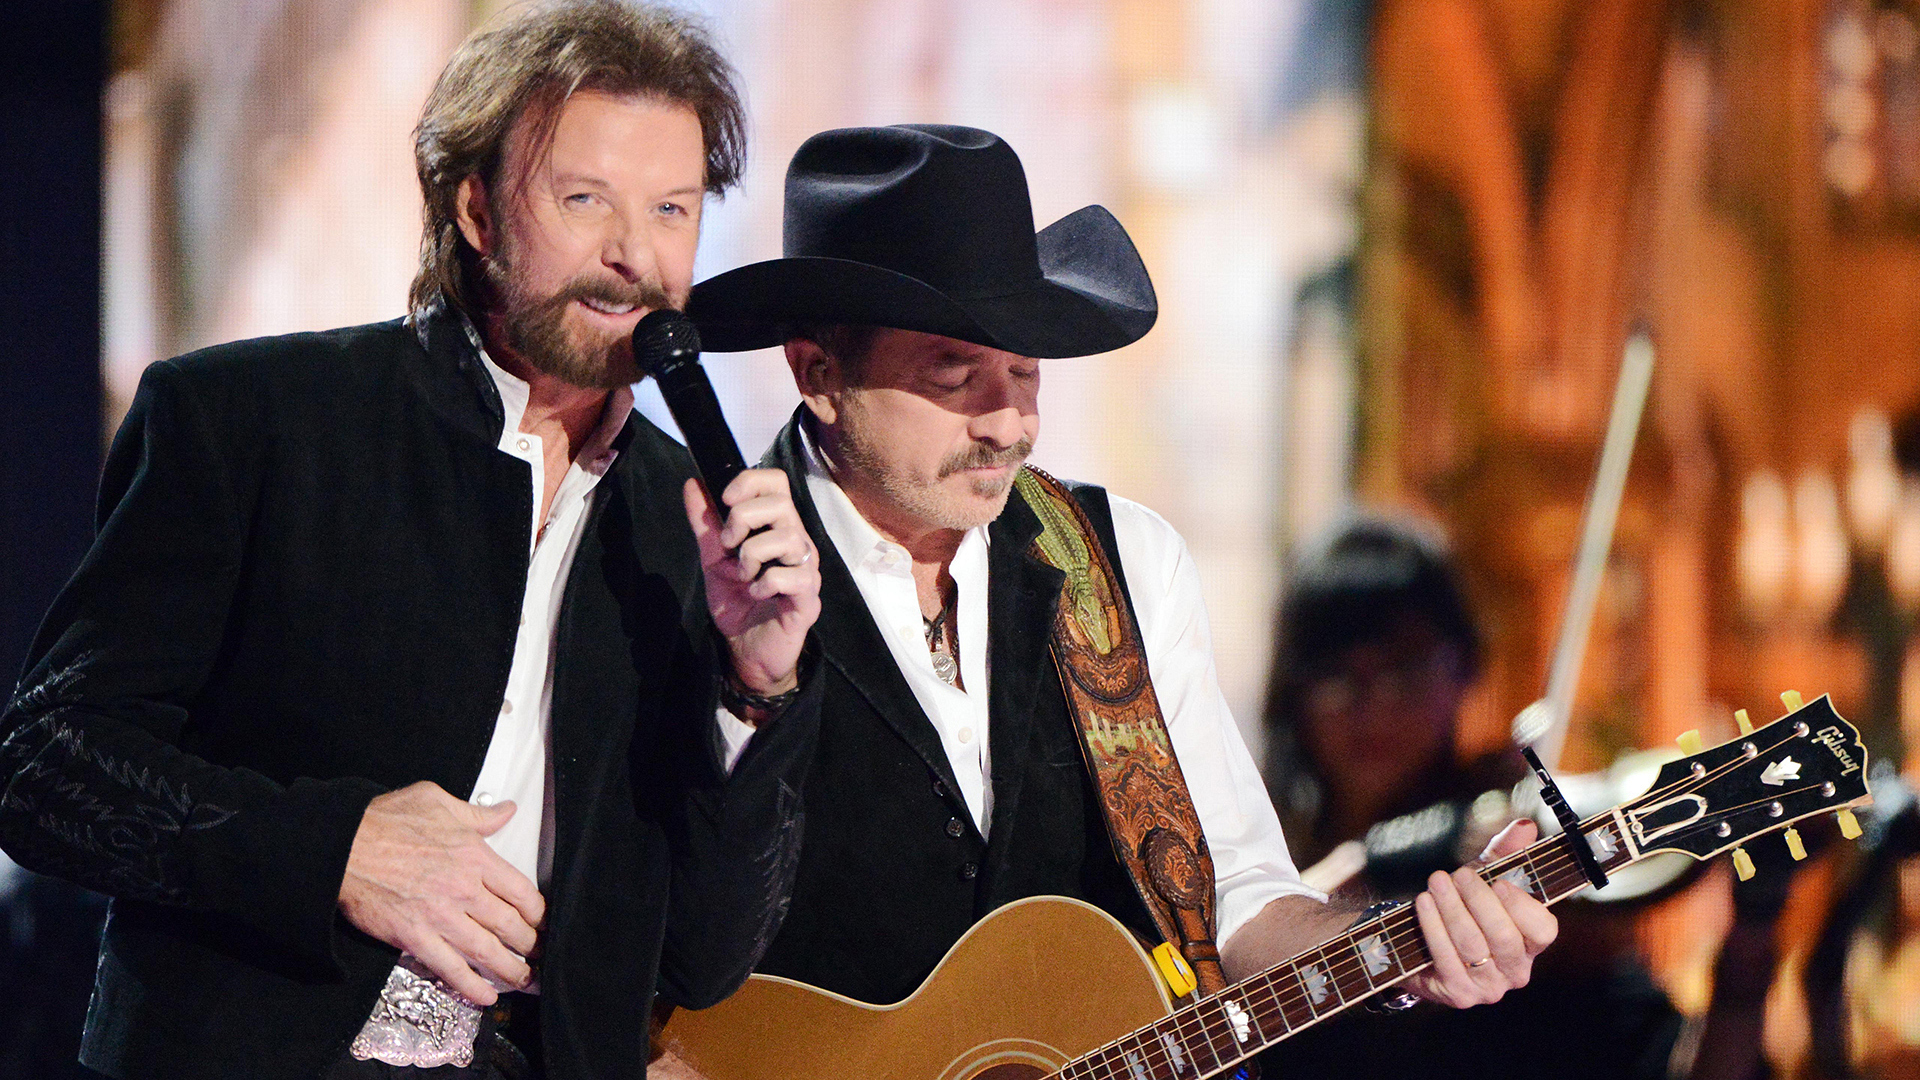 """18. Brooks & Dunn perform """"My Maria"""" at the 50th ACM Awards in 2015."""